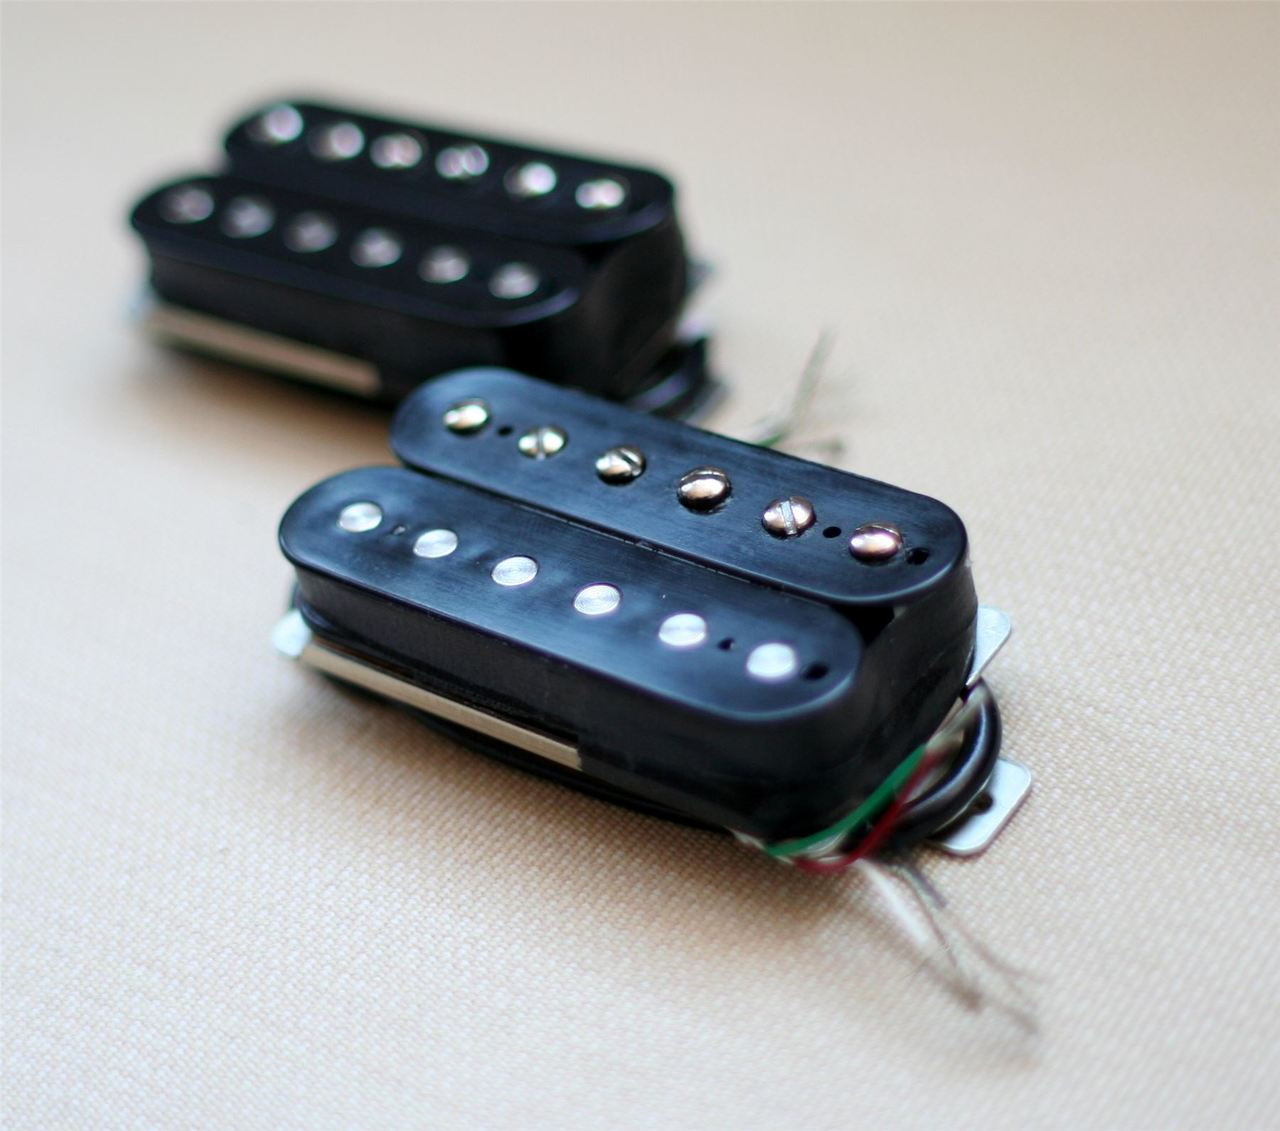 New Lindy Fralin Pure PAF Bridge Humbucker Black 4-Wire Version Made in USA